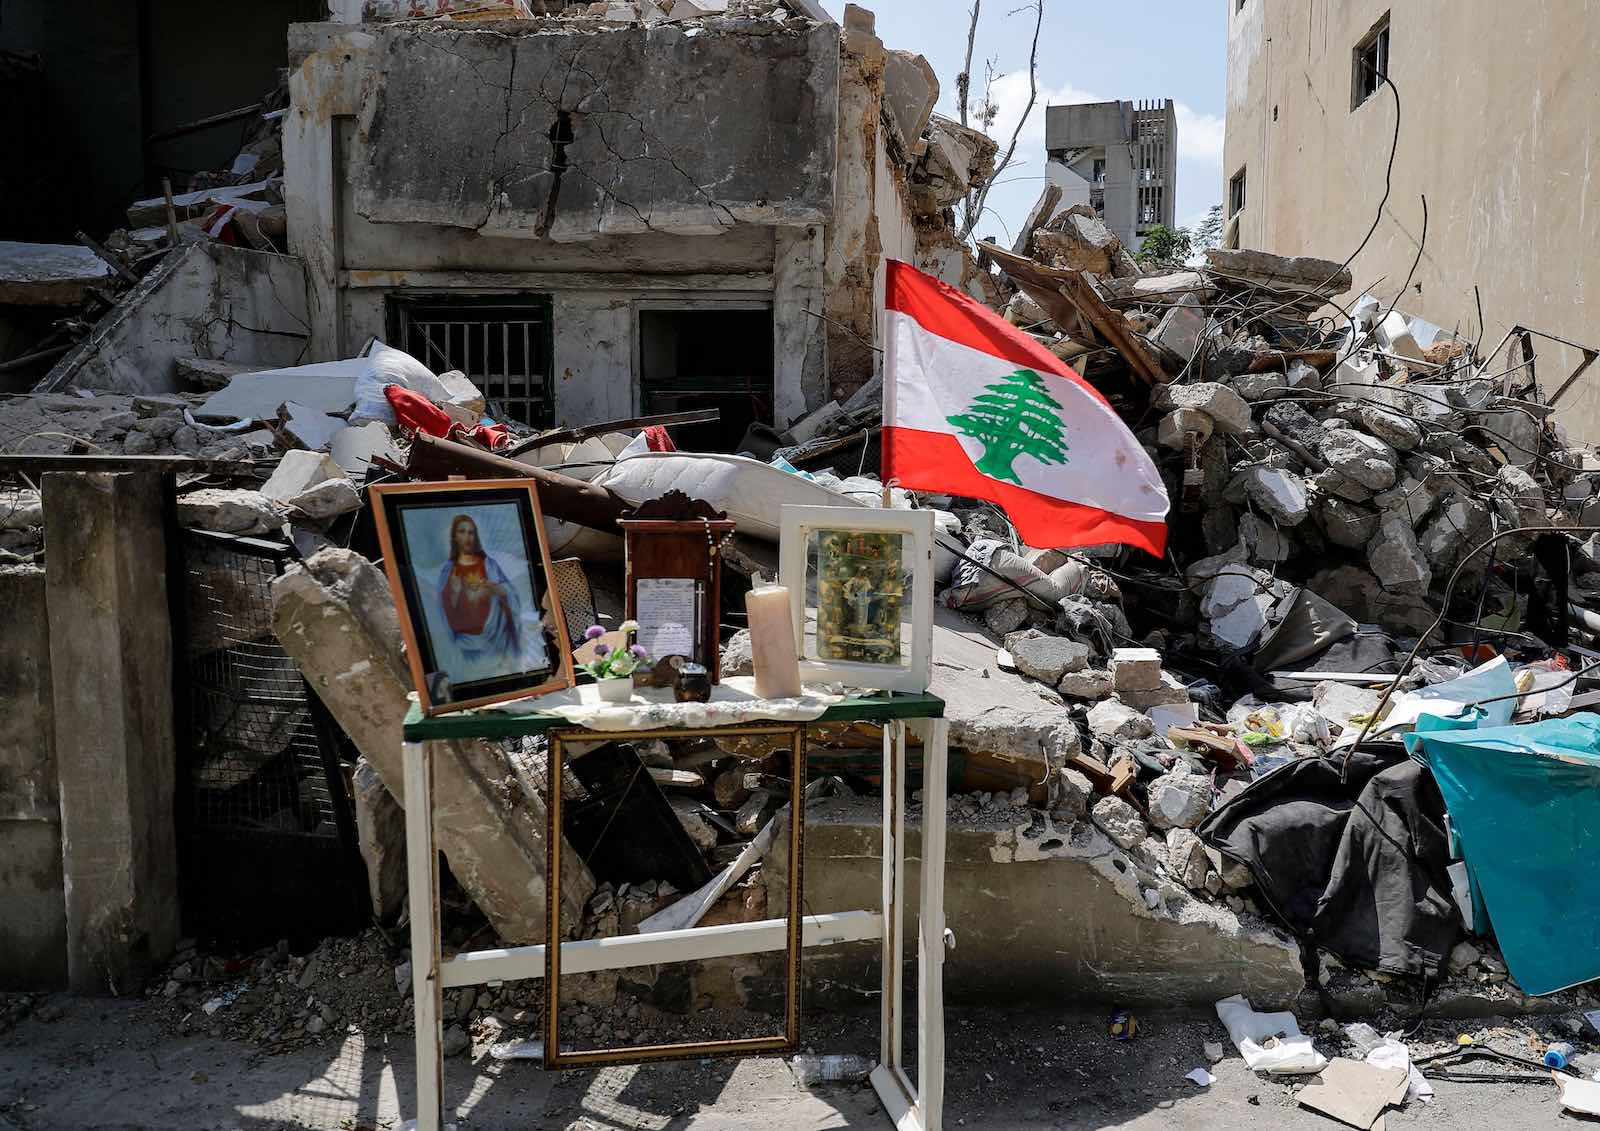 A makeshift Christian shrine in Beirut in the wake of the 4 August blast (Joseph Eid/AFP via Getty Images)